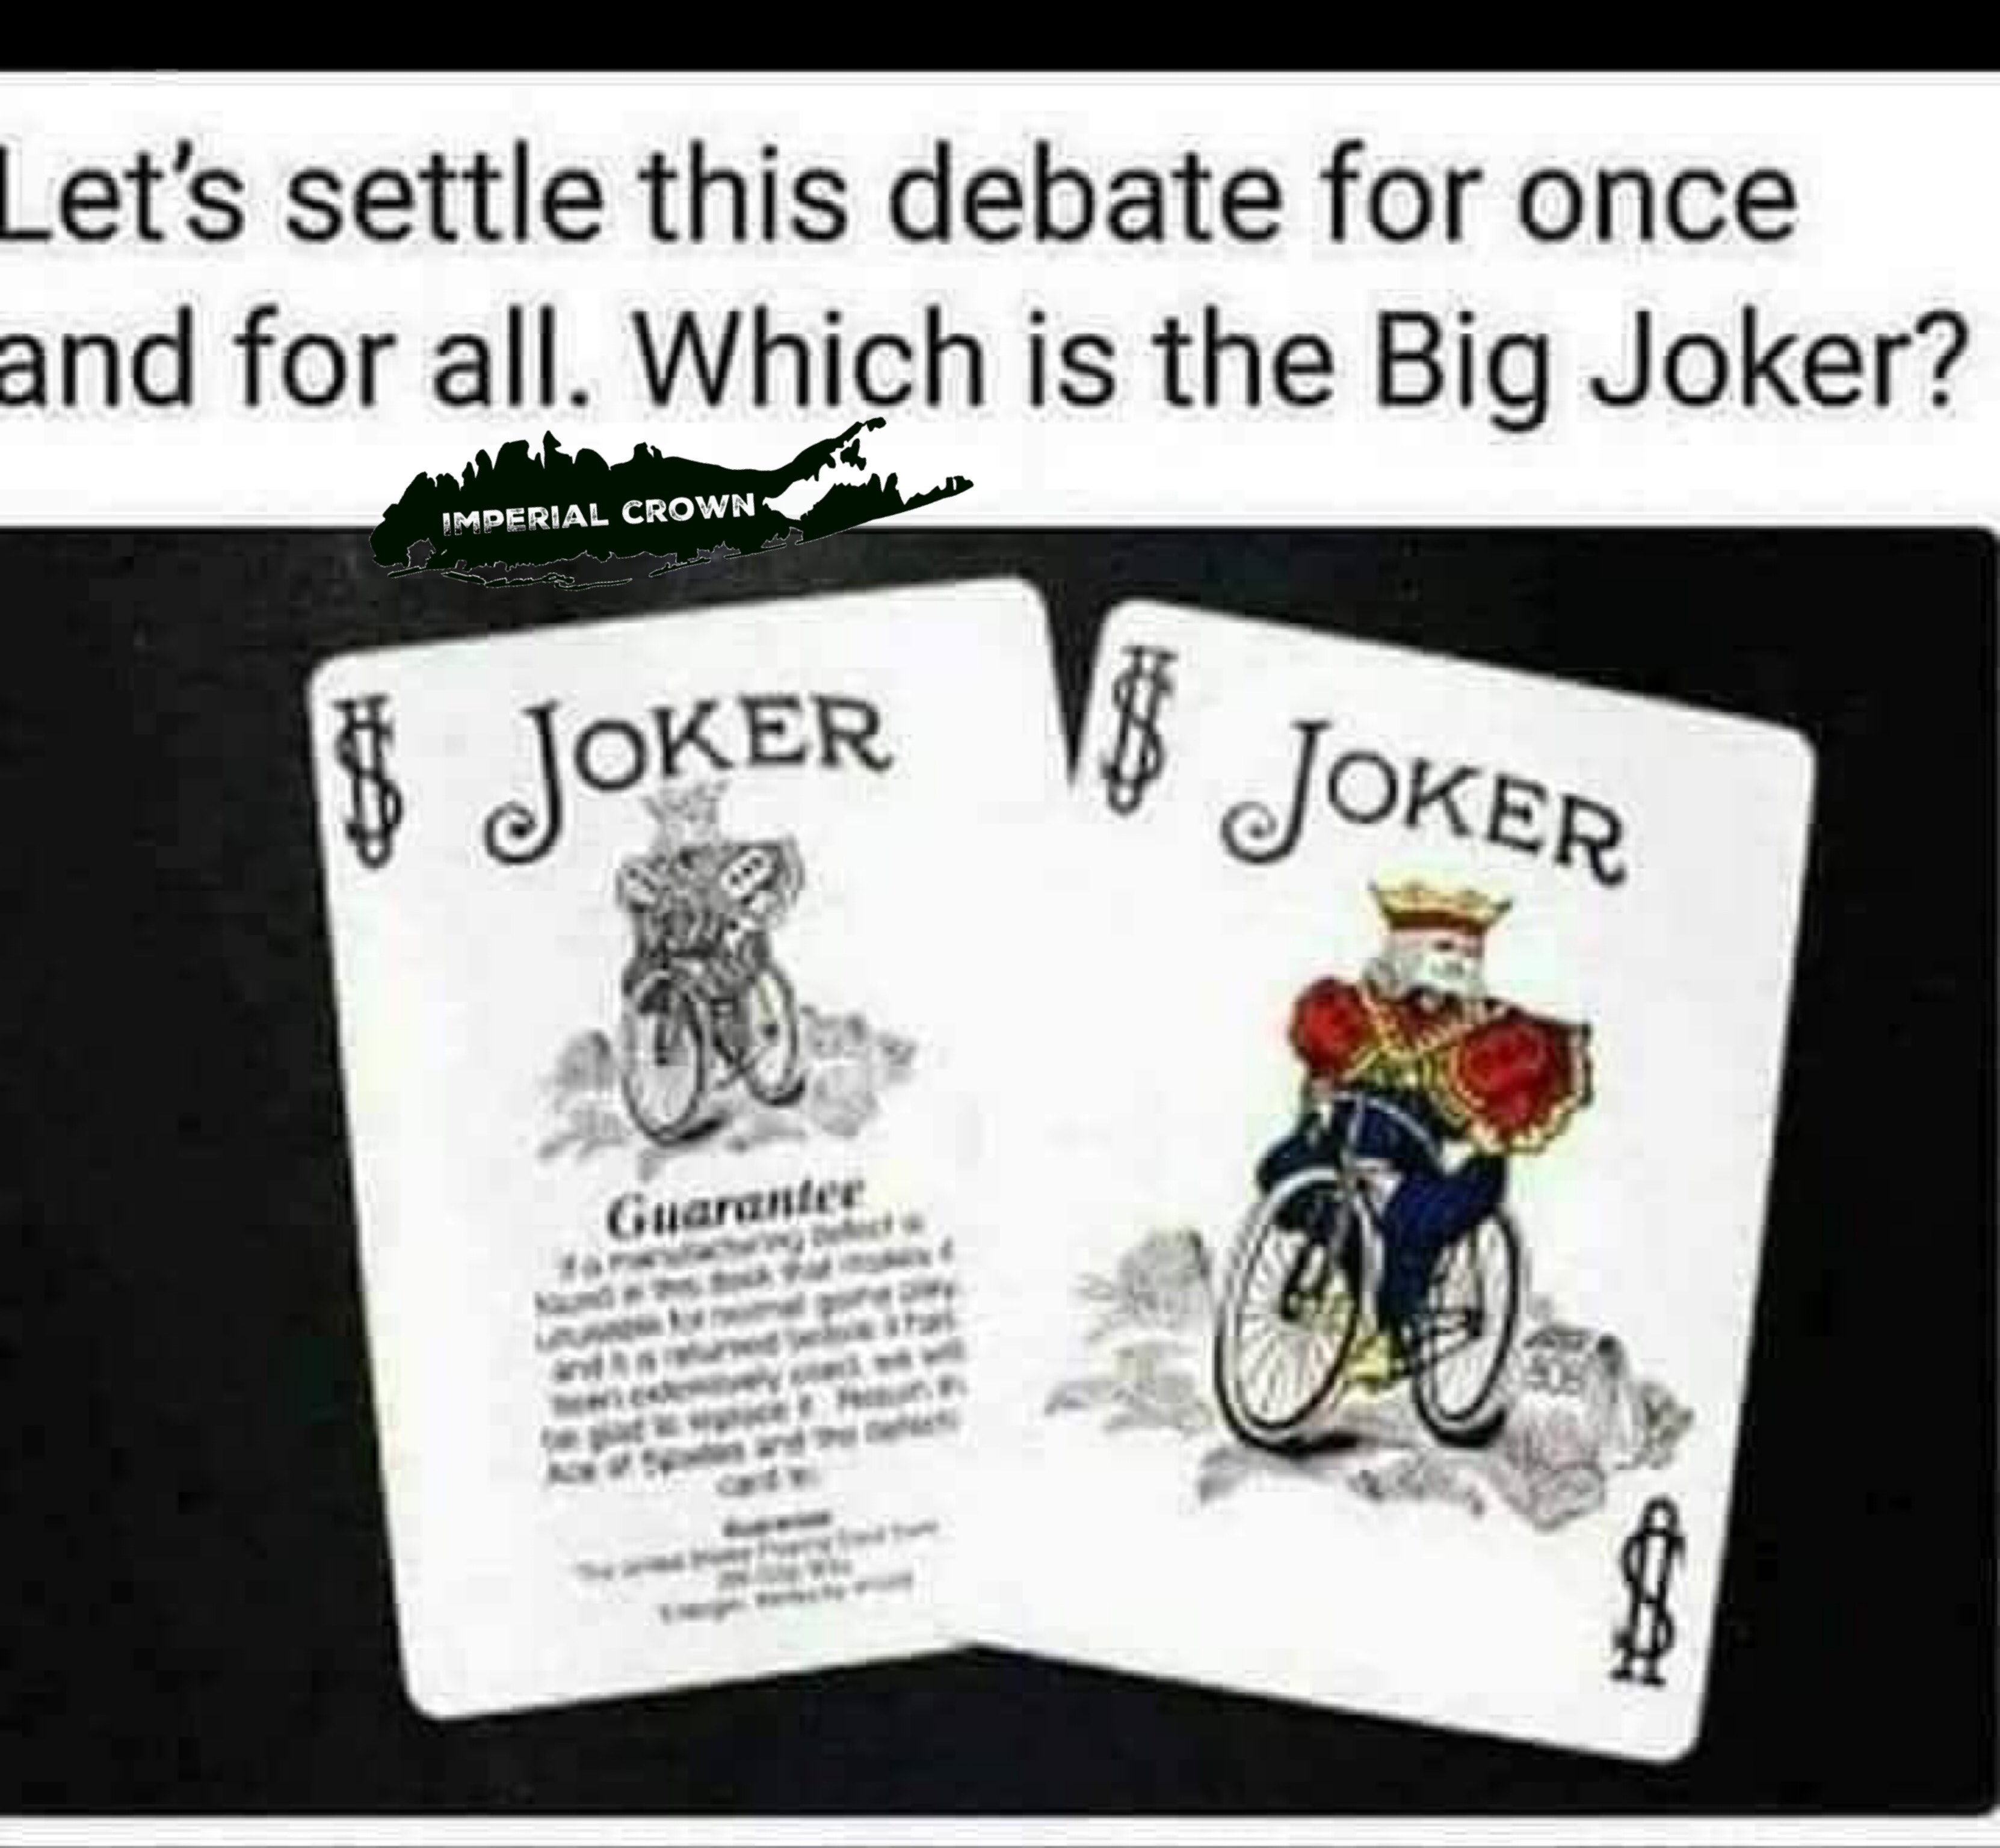 Let settle this debate for once and for all which is the big joker